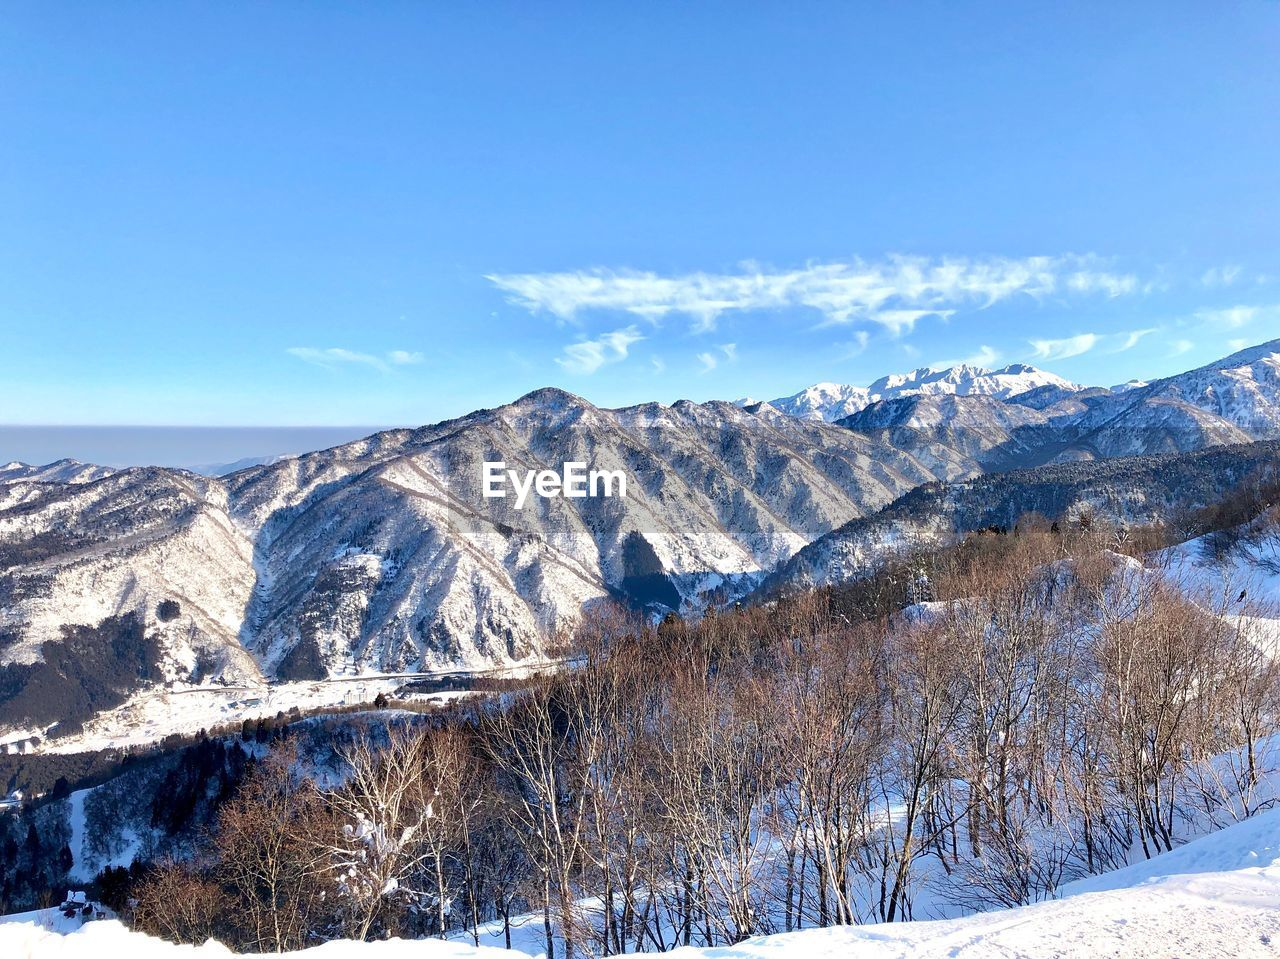 scenics - nature, sky, winter, beauty in nature, mountain, snow, tranquil scene, tranquility, cold temperature, environment, non-urban scene, landscape, mountain range, nature, cloud - sky, blue, day, no people, idyllic, snowcapped mountain, outdoors